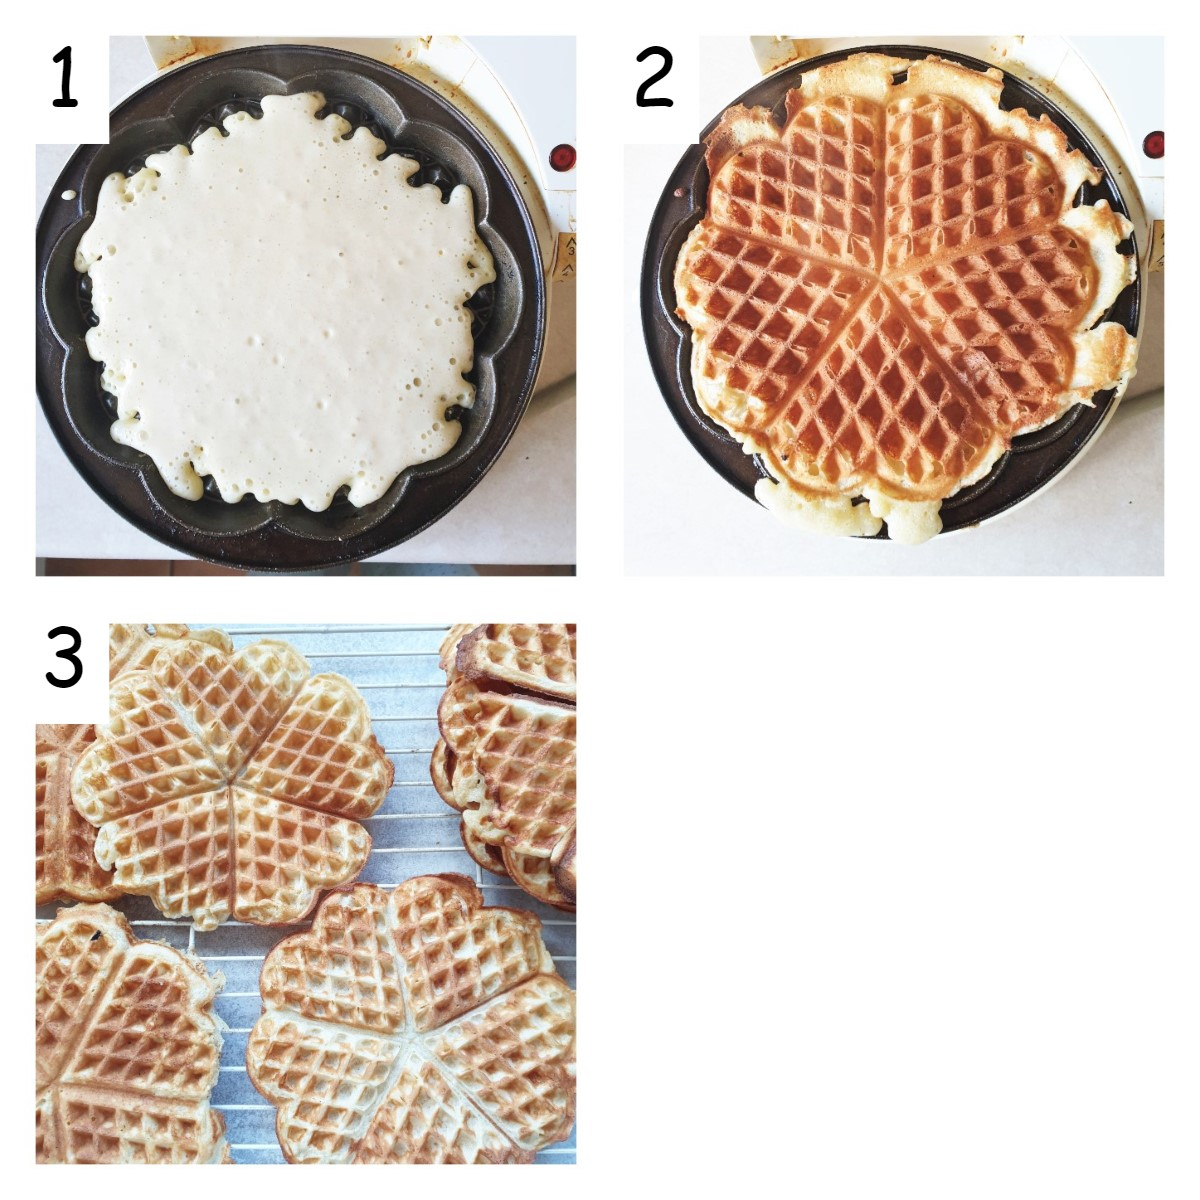 Collage of 3 images showing how to fry waffles.